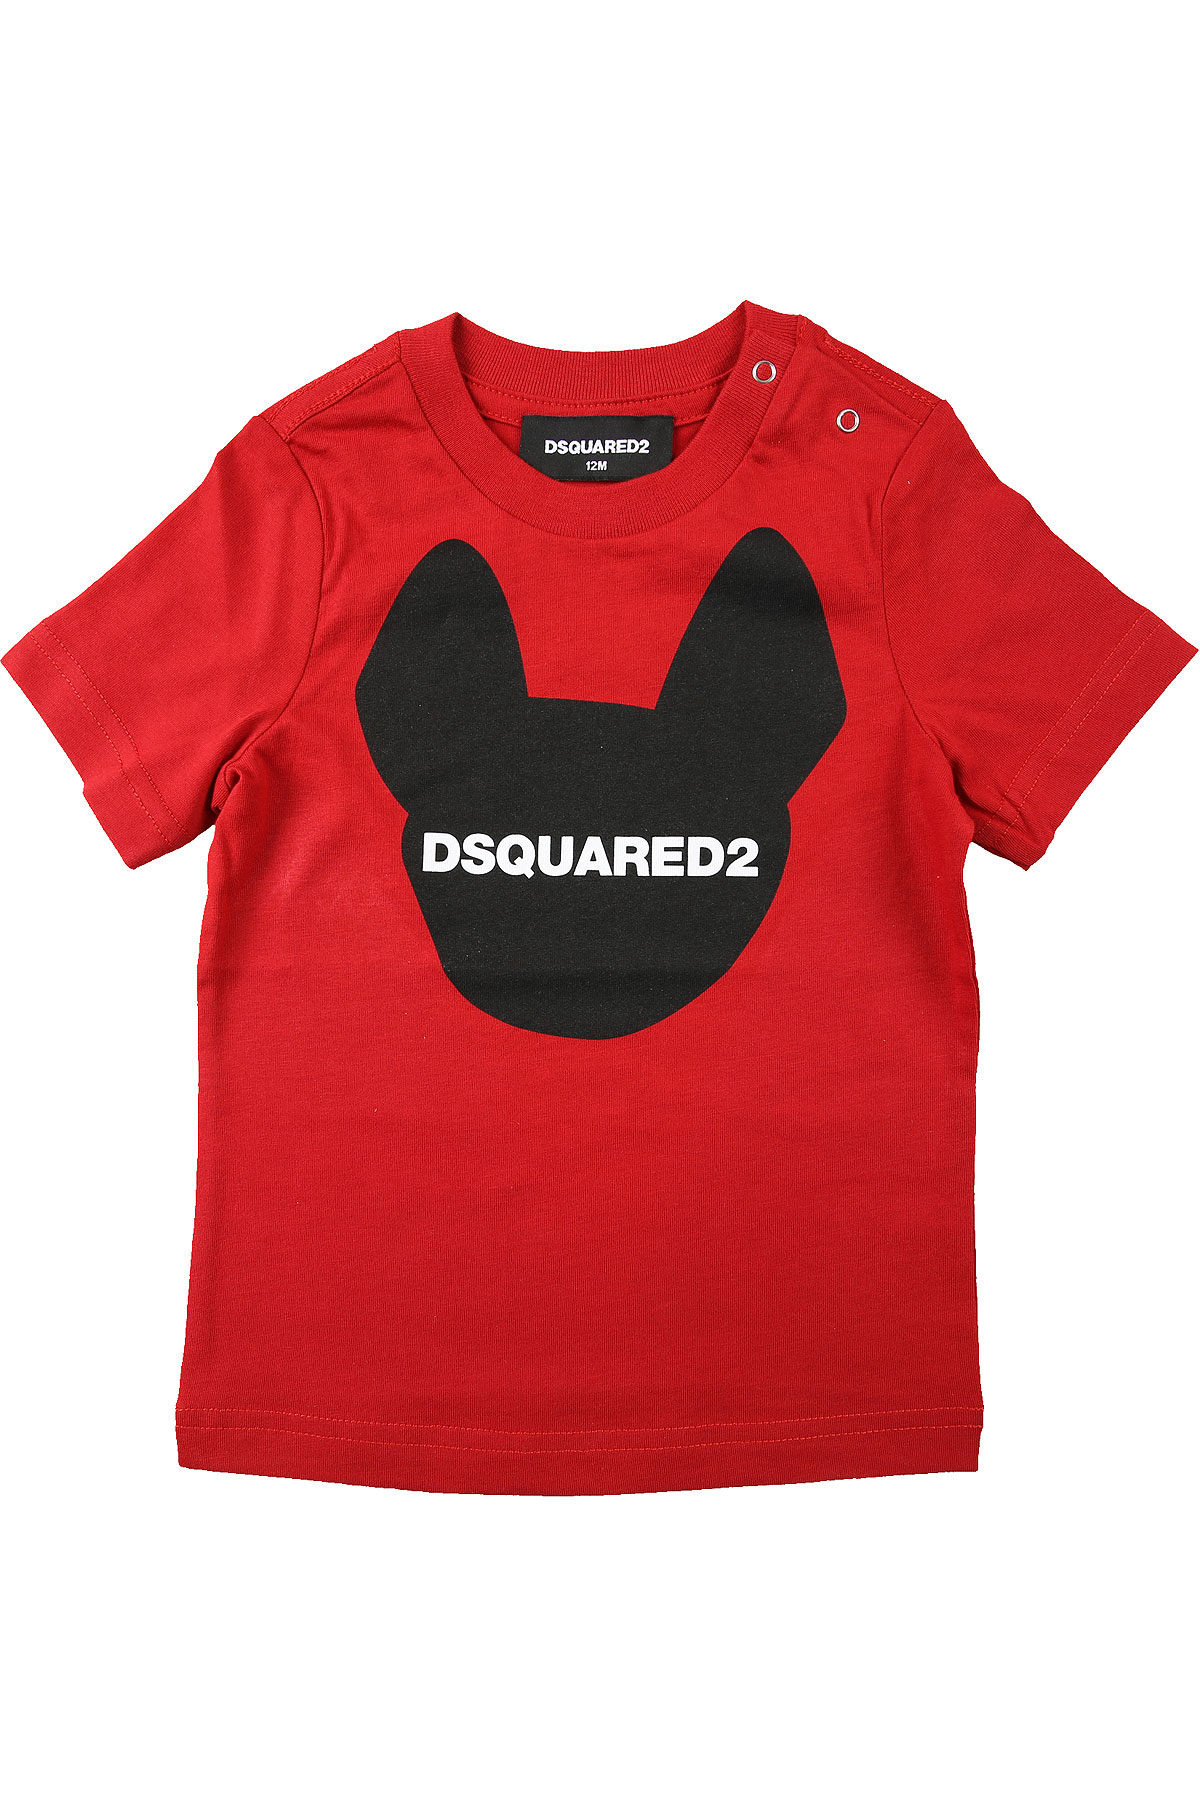 Dsquared2 Baby T-Shirt for Boys On Sale, Red, Cotton, 2019, 12 M 3Y 6M 9M